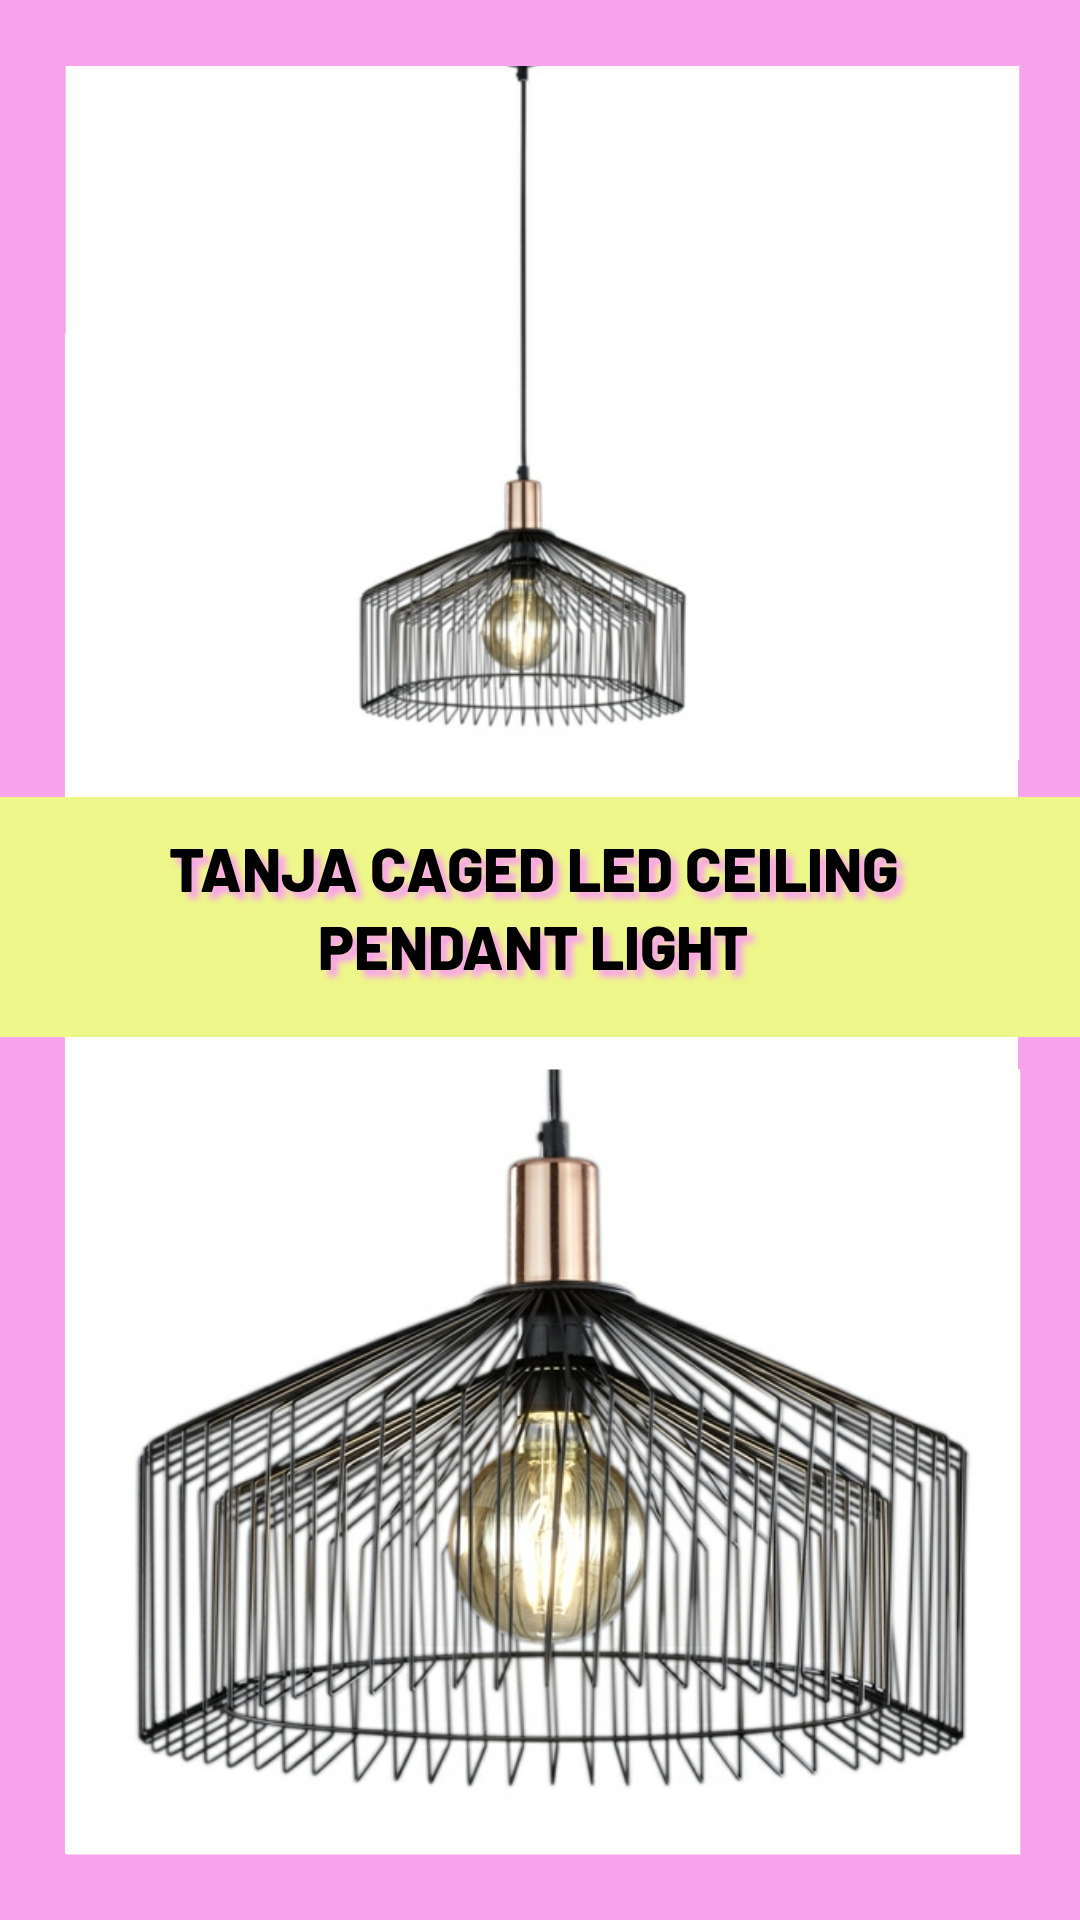 tanja_caged_led_ceiling_pendant_light_instagram_stories.png